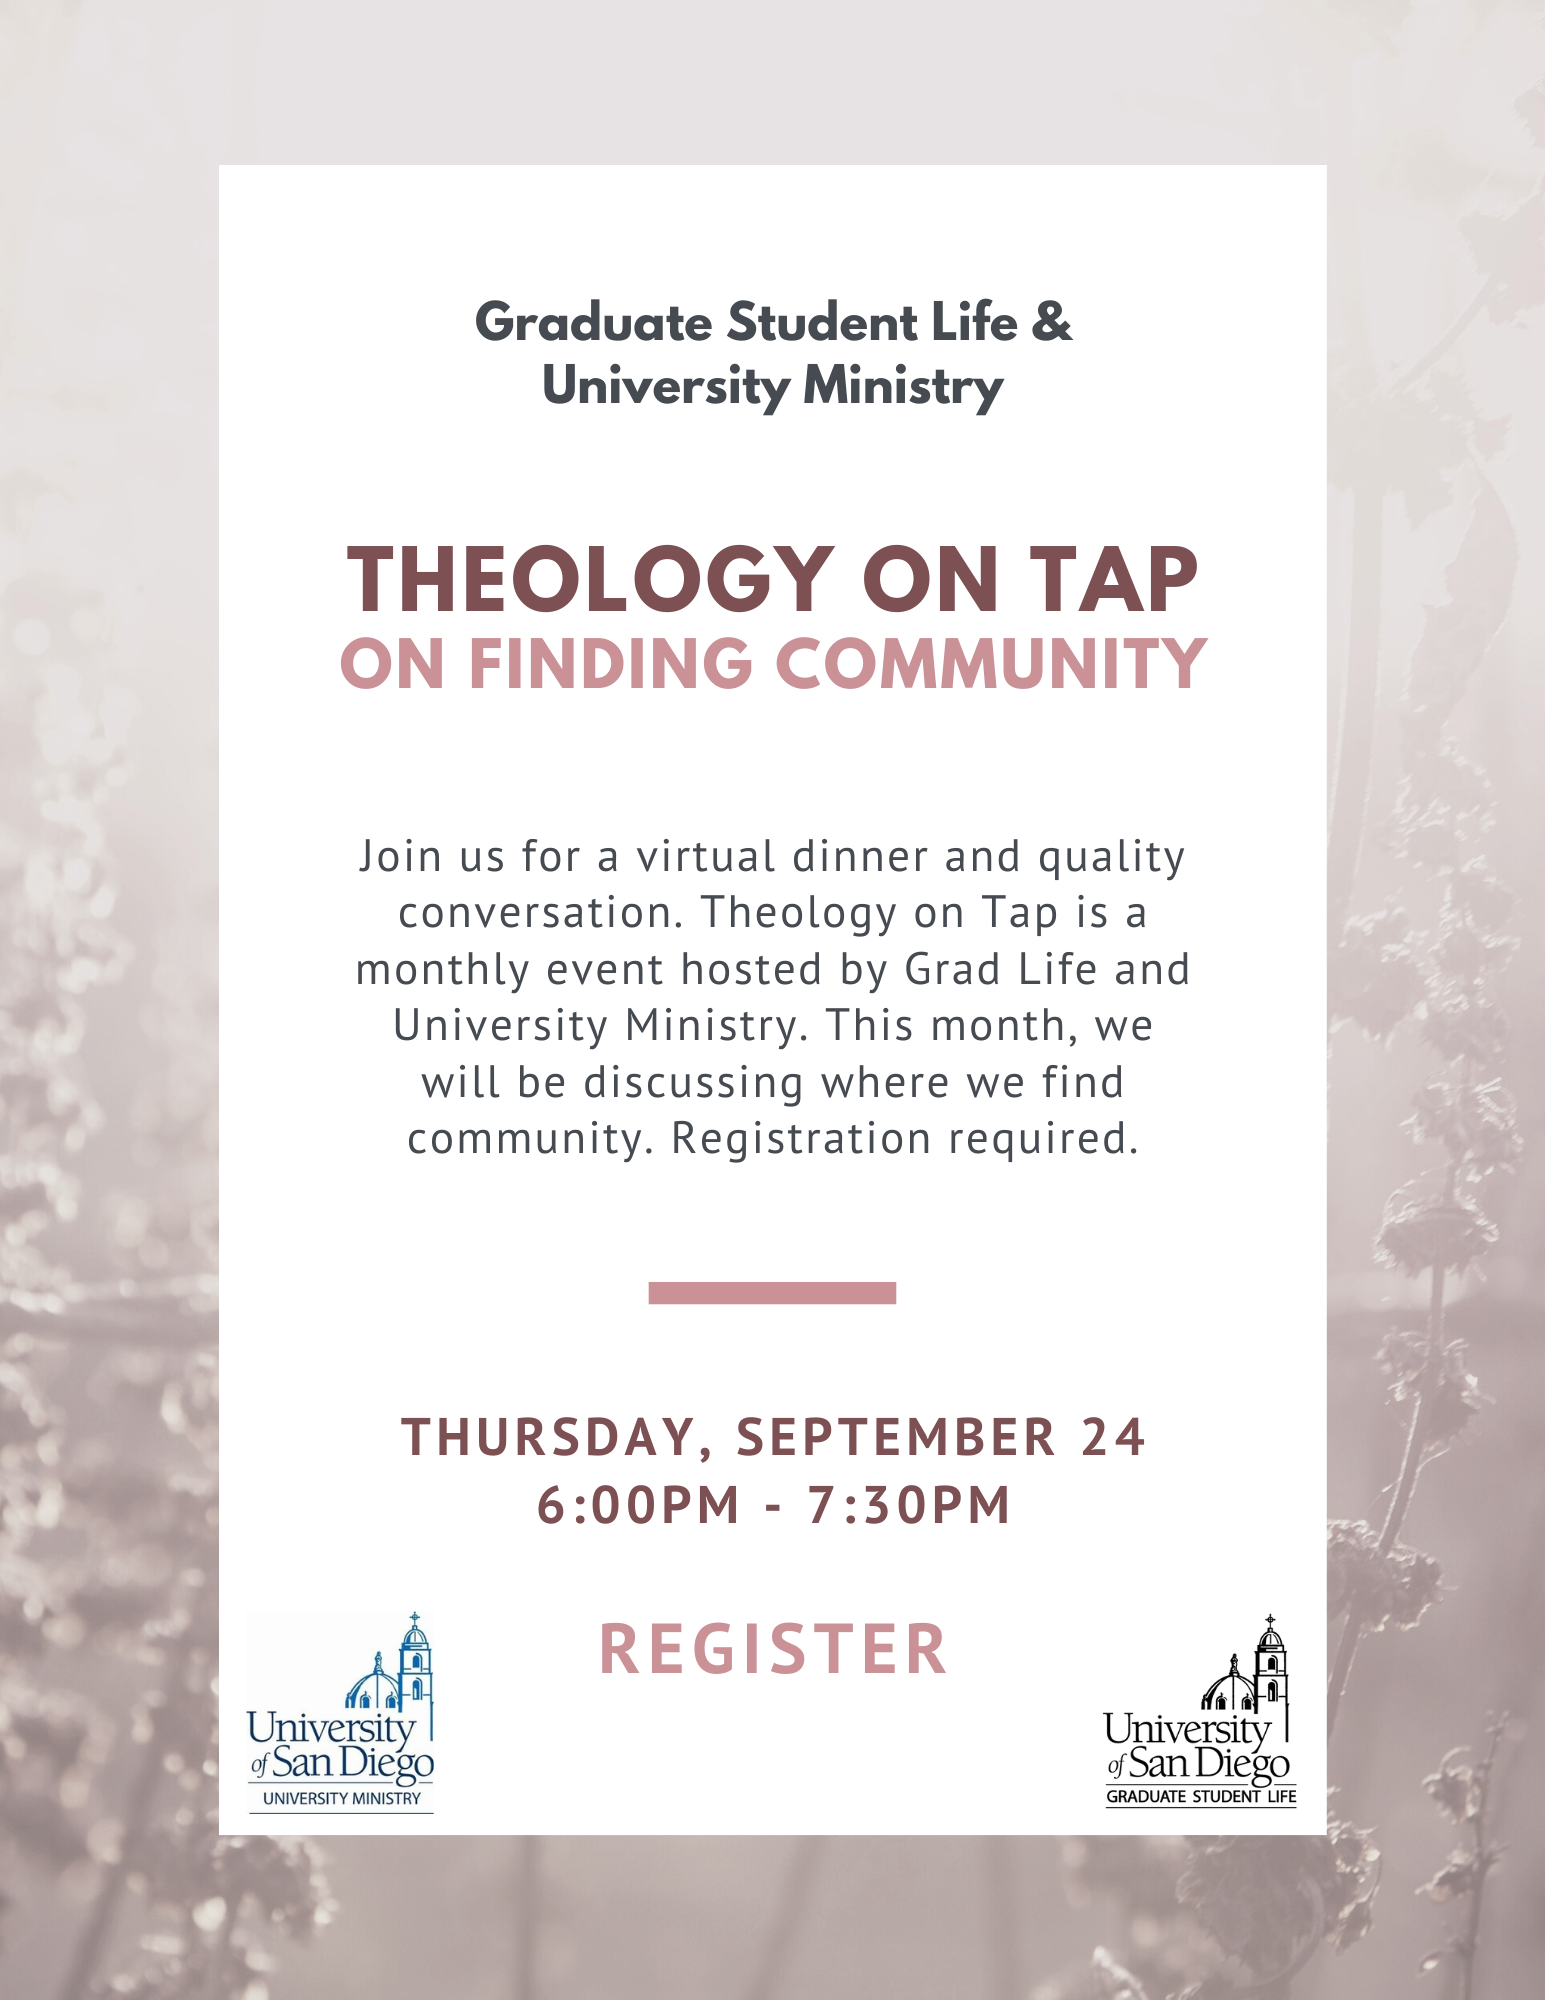 Theology on Tap Flyer, pale pink background with white box with text in black and dark pale pink